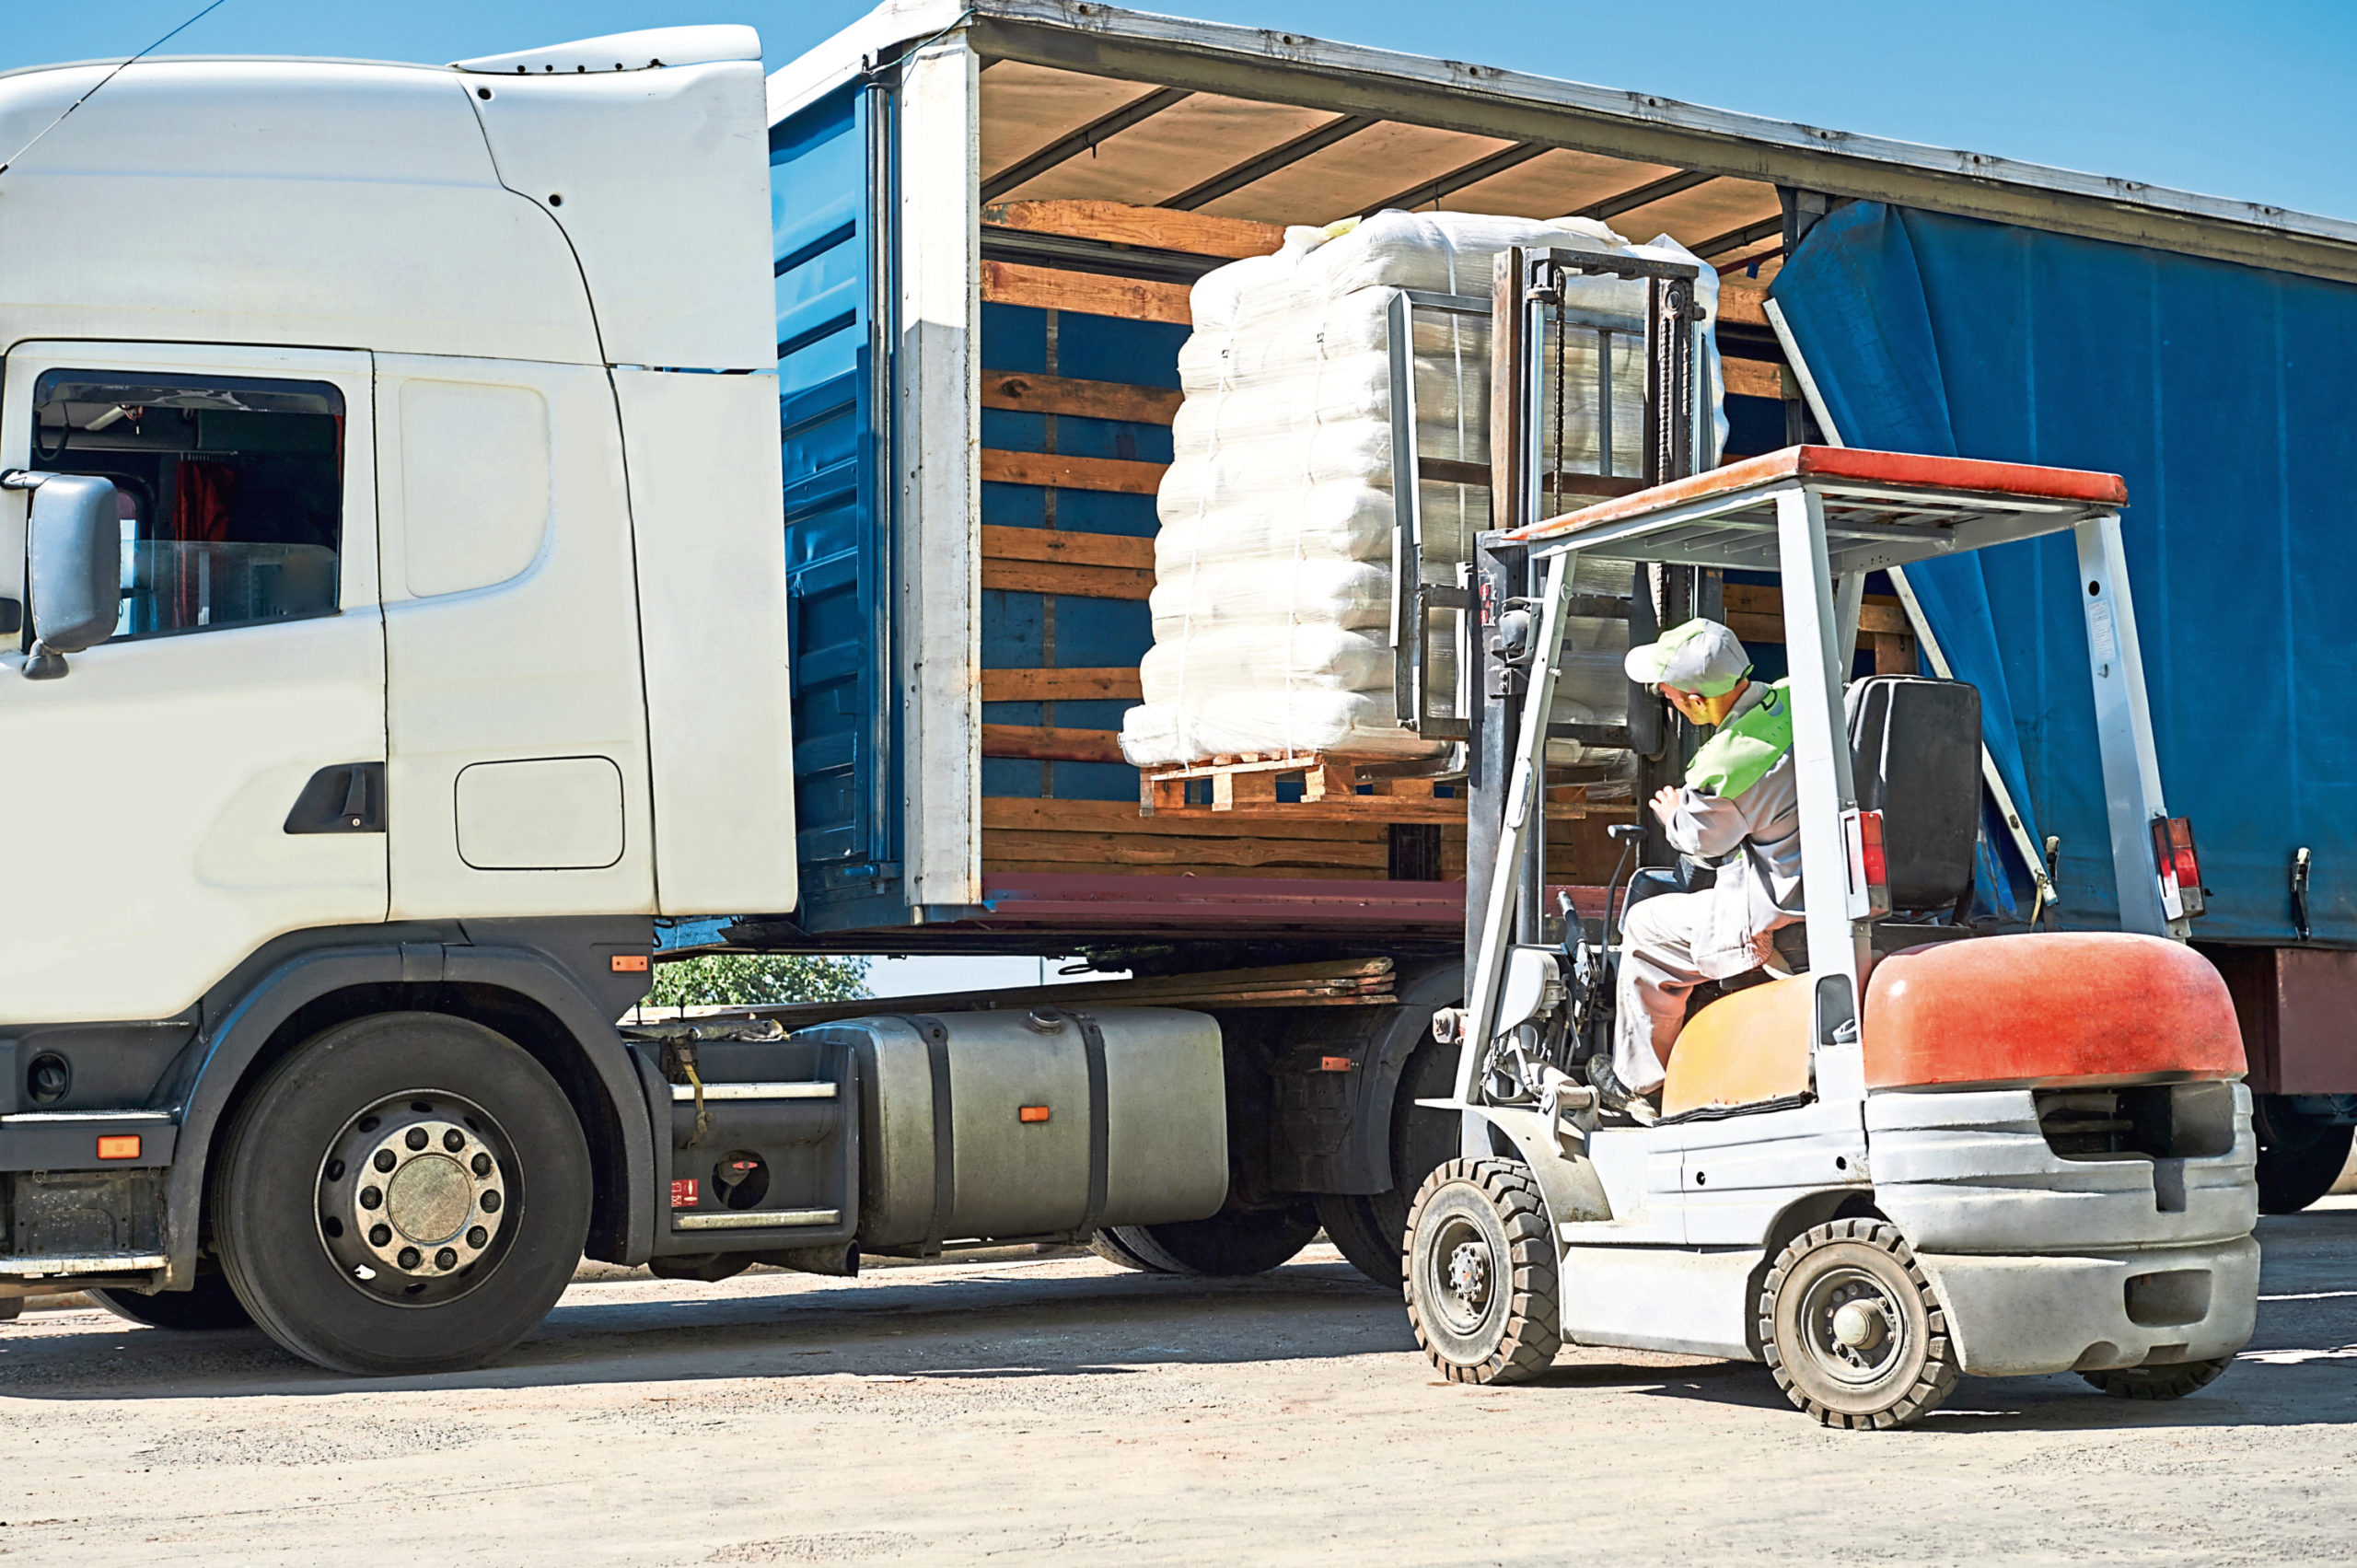 Farmers are being asked to keep a safe distance and provide hand sanitation for drivers delivering essential supplies.